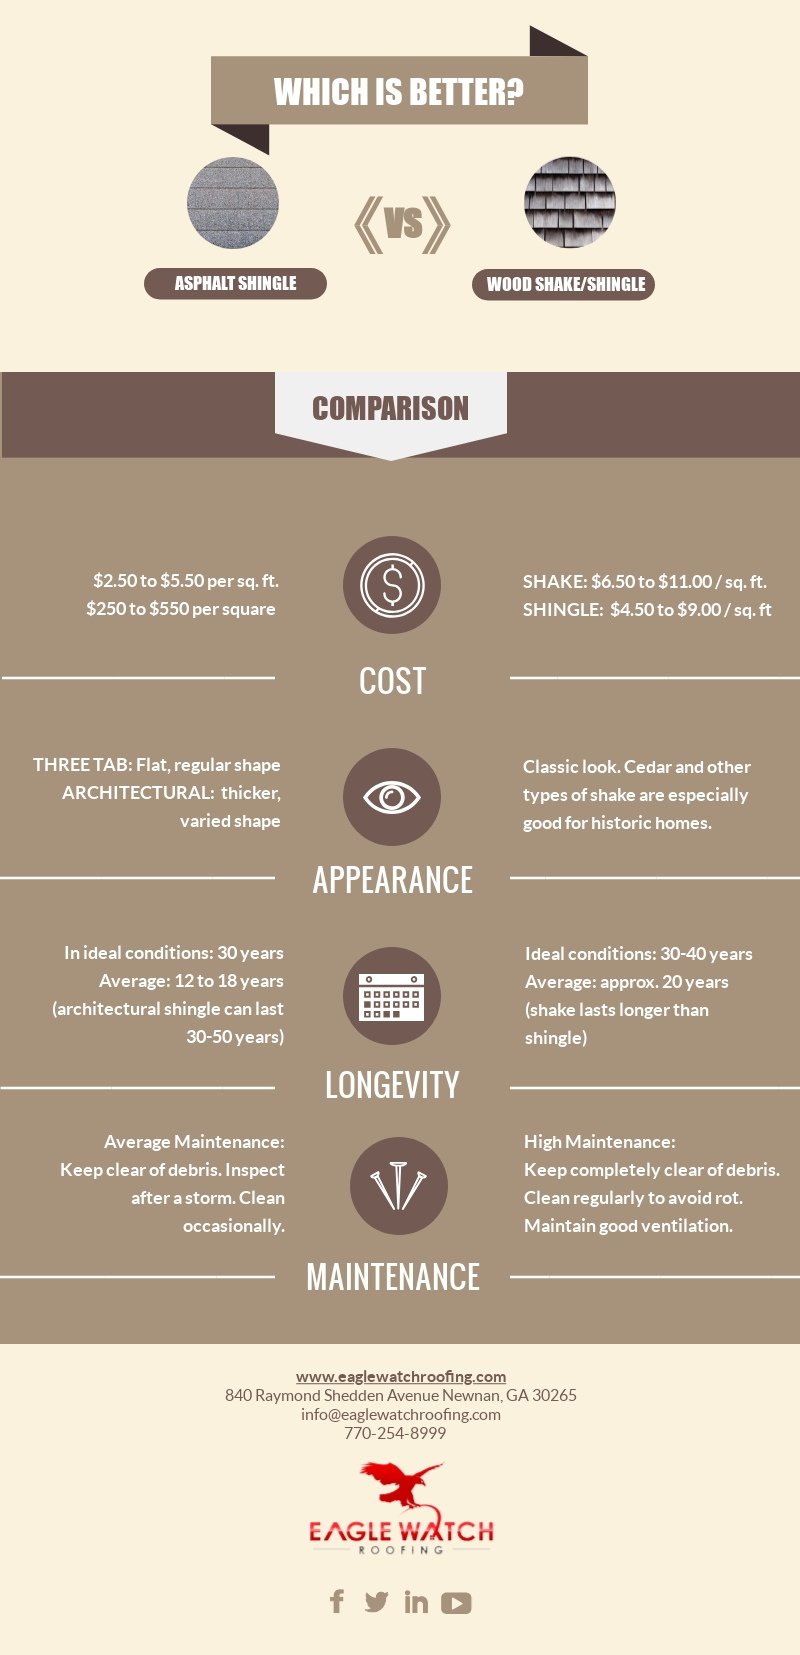 Asphalt Shingles v Cedar Shakes: Which is Better [infographic]